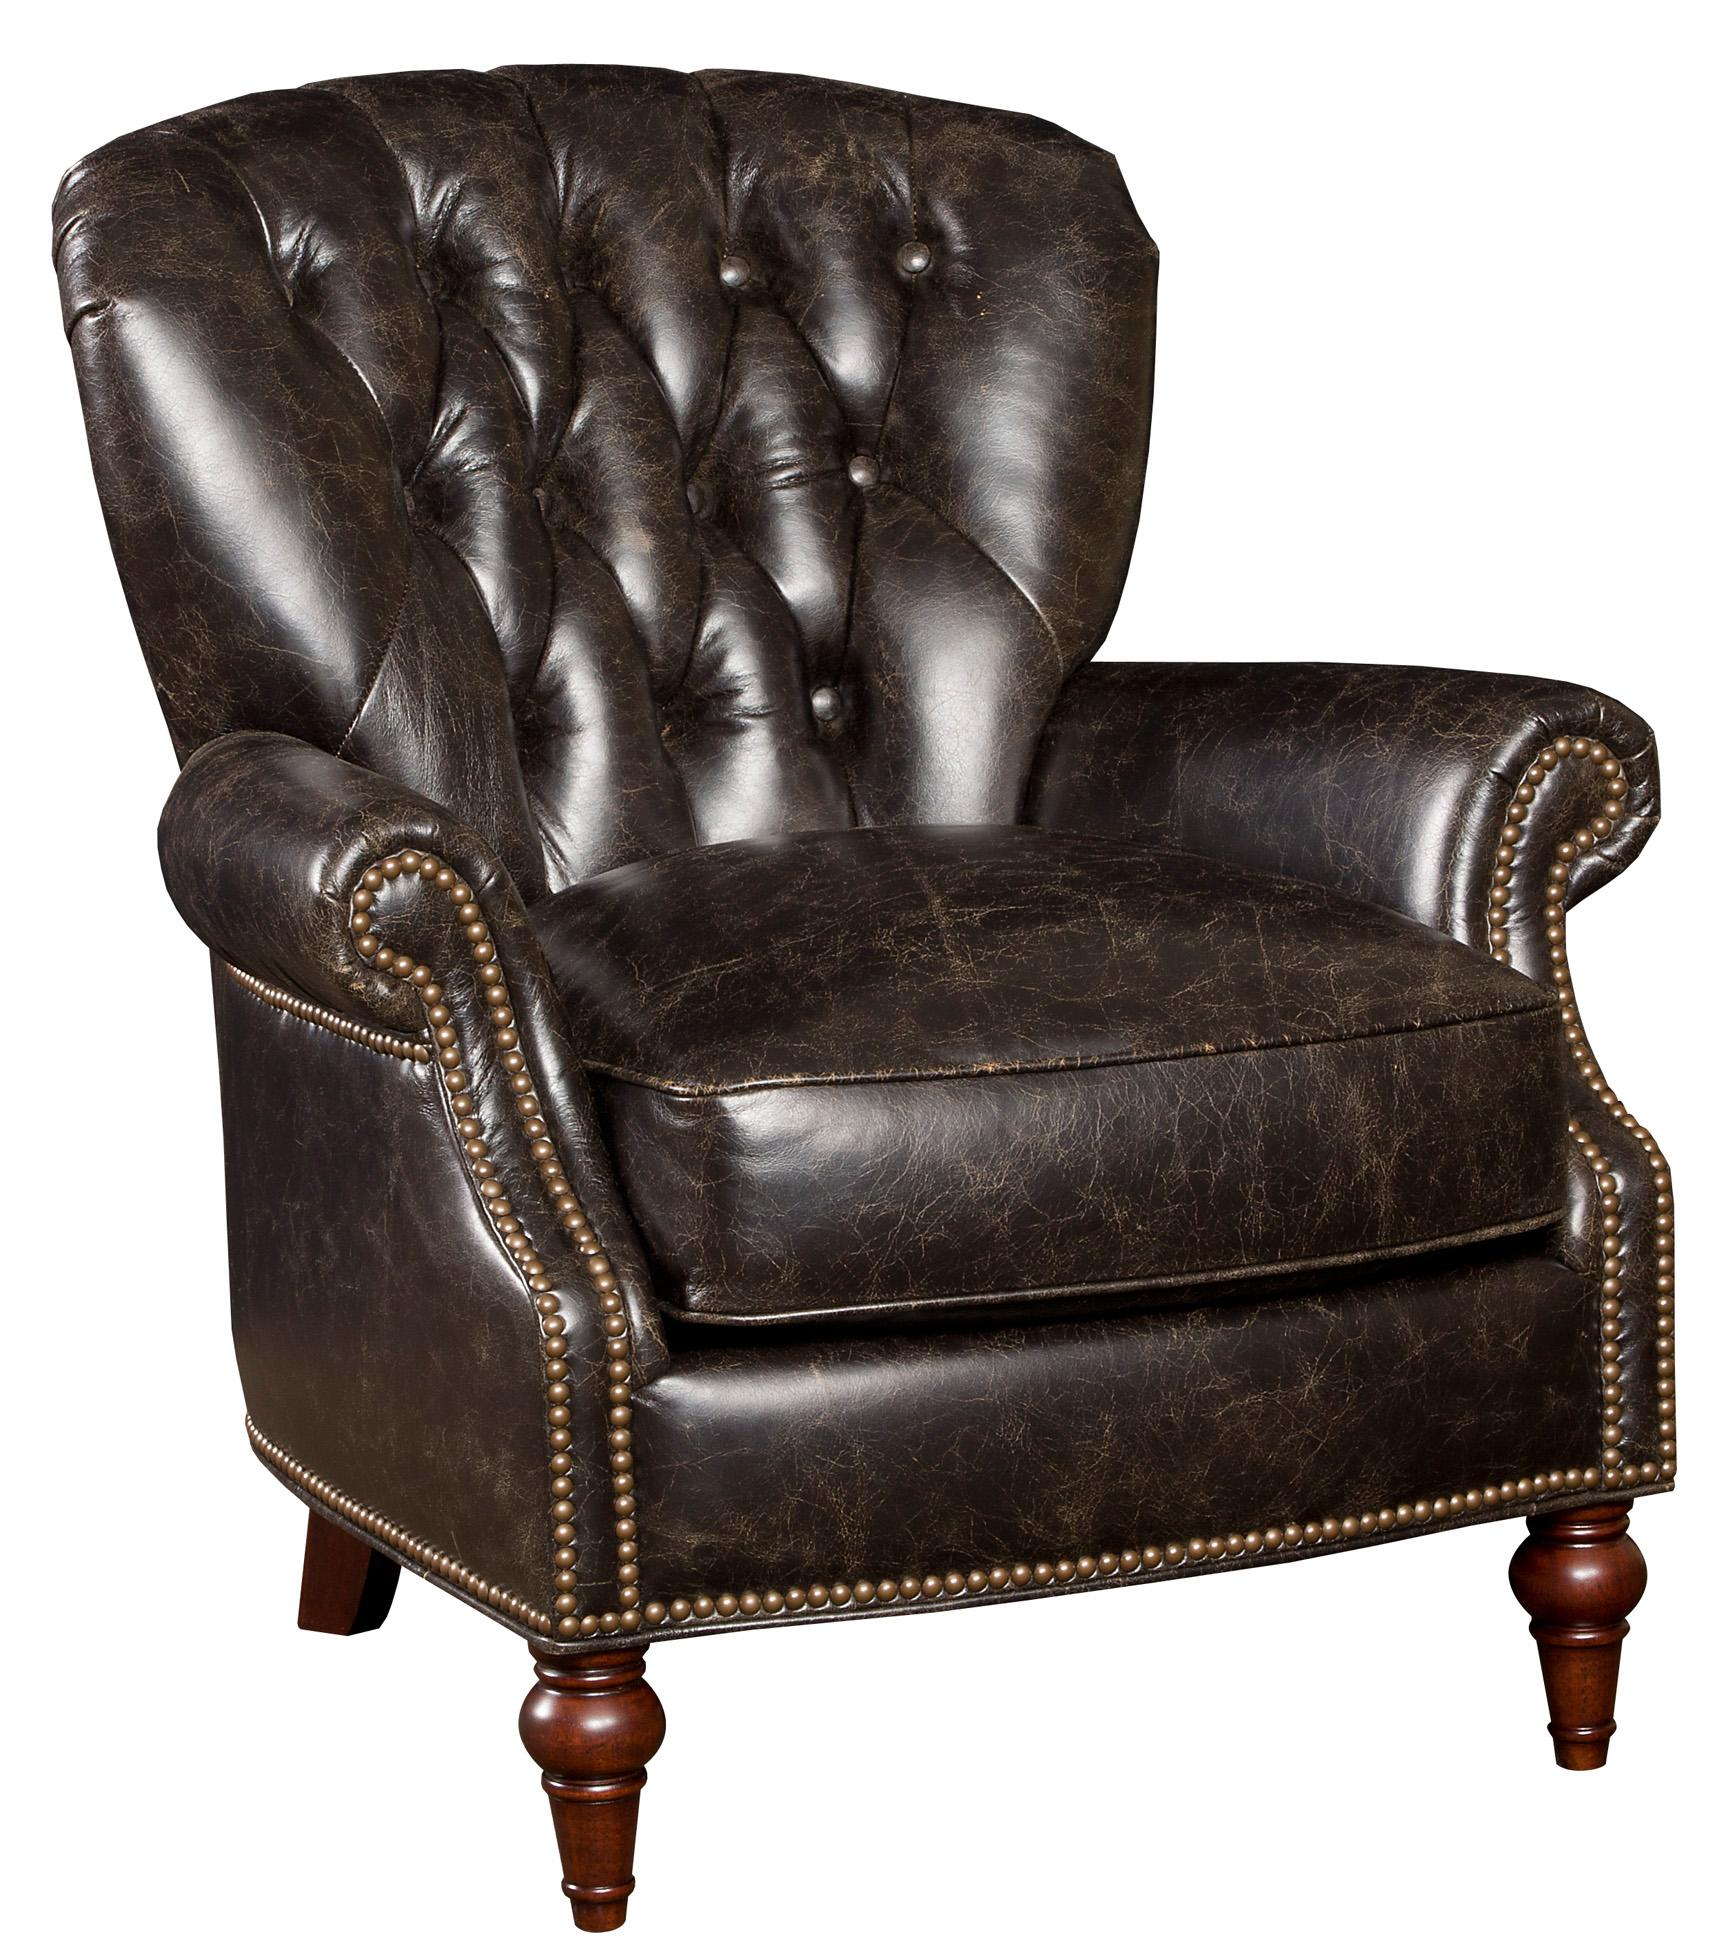 Club Chairs Traditional Leather Nailhead Trim Club Chair With Exposed Wood  Feet By Hooker Furniture